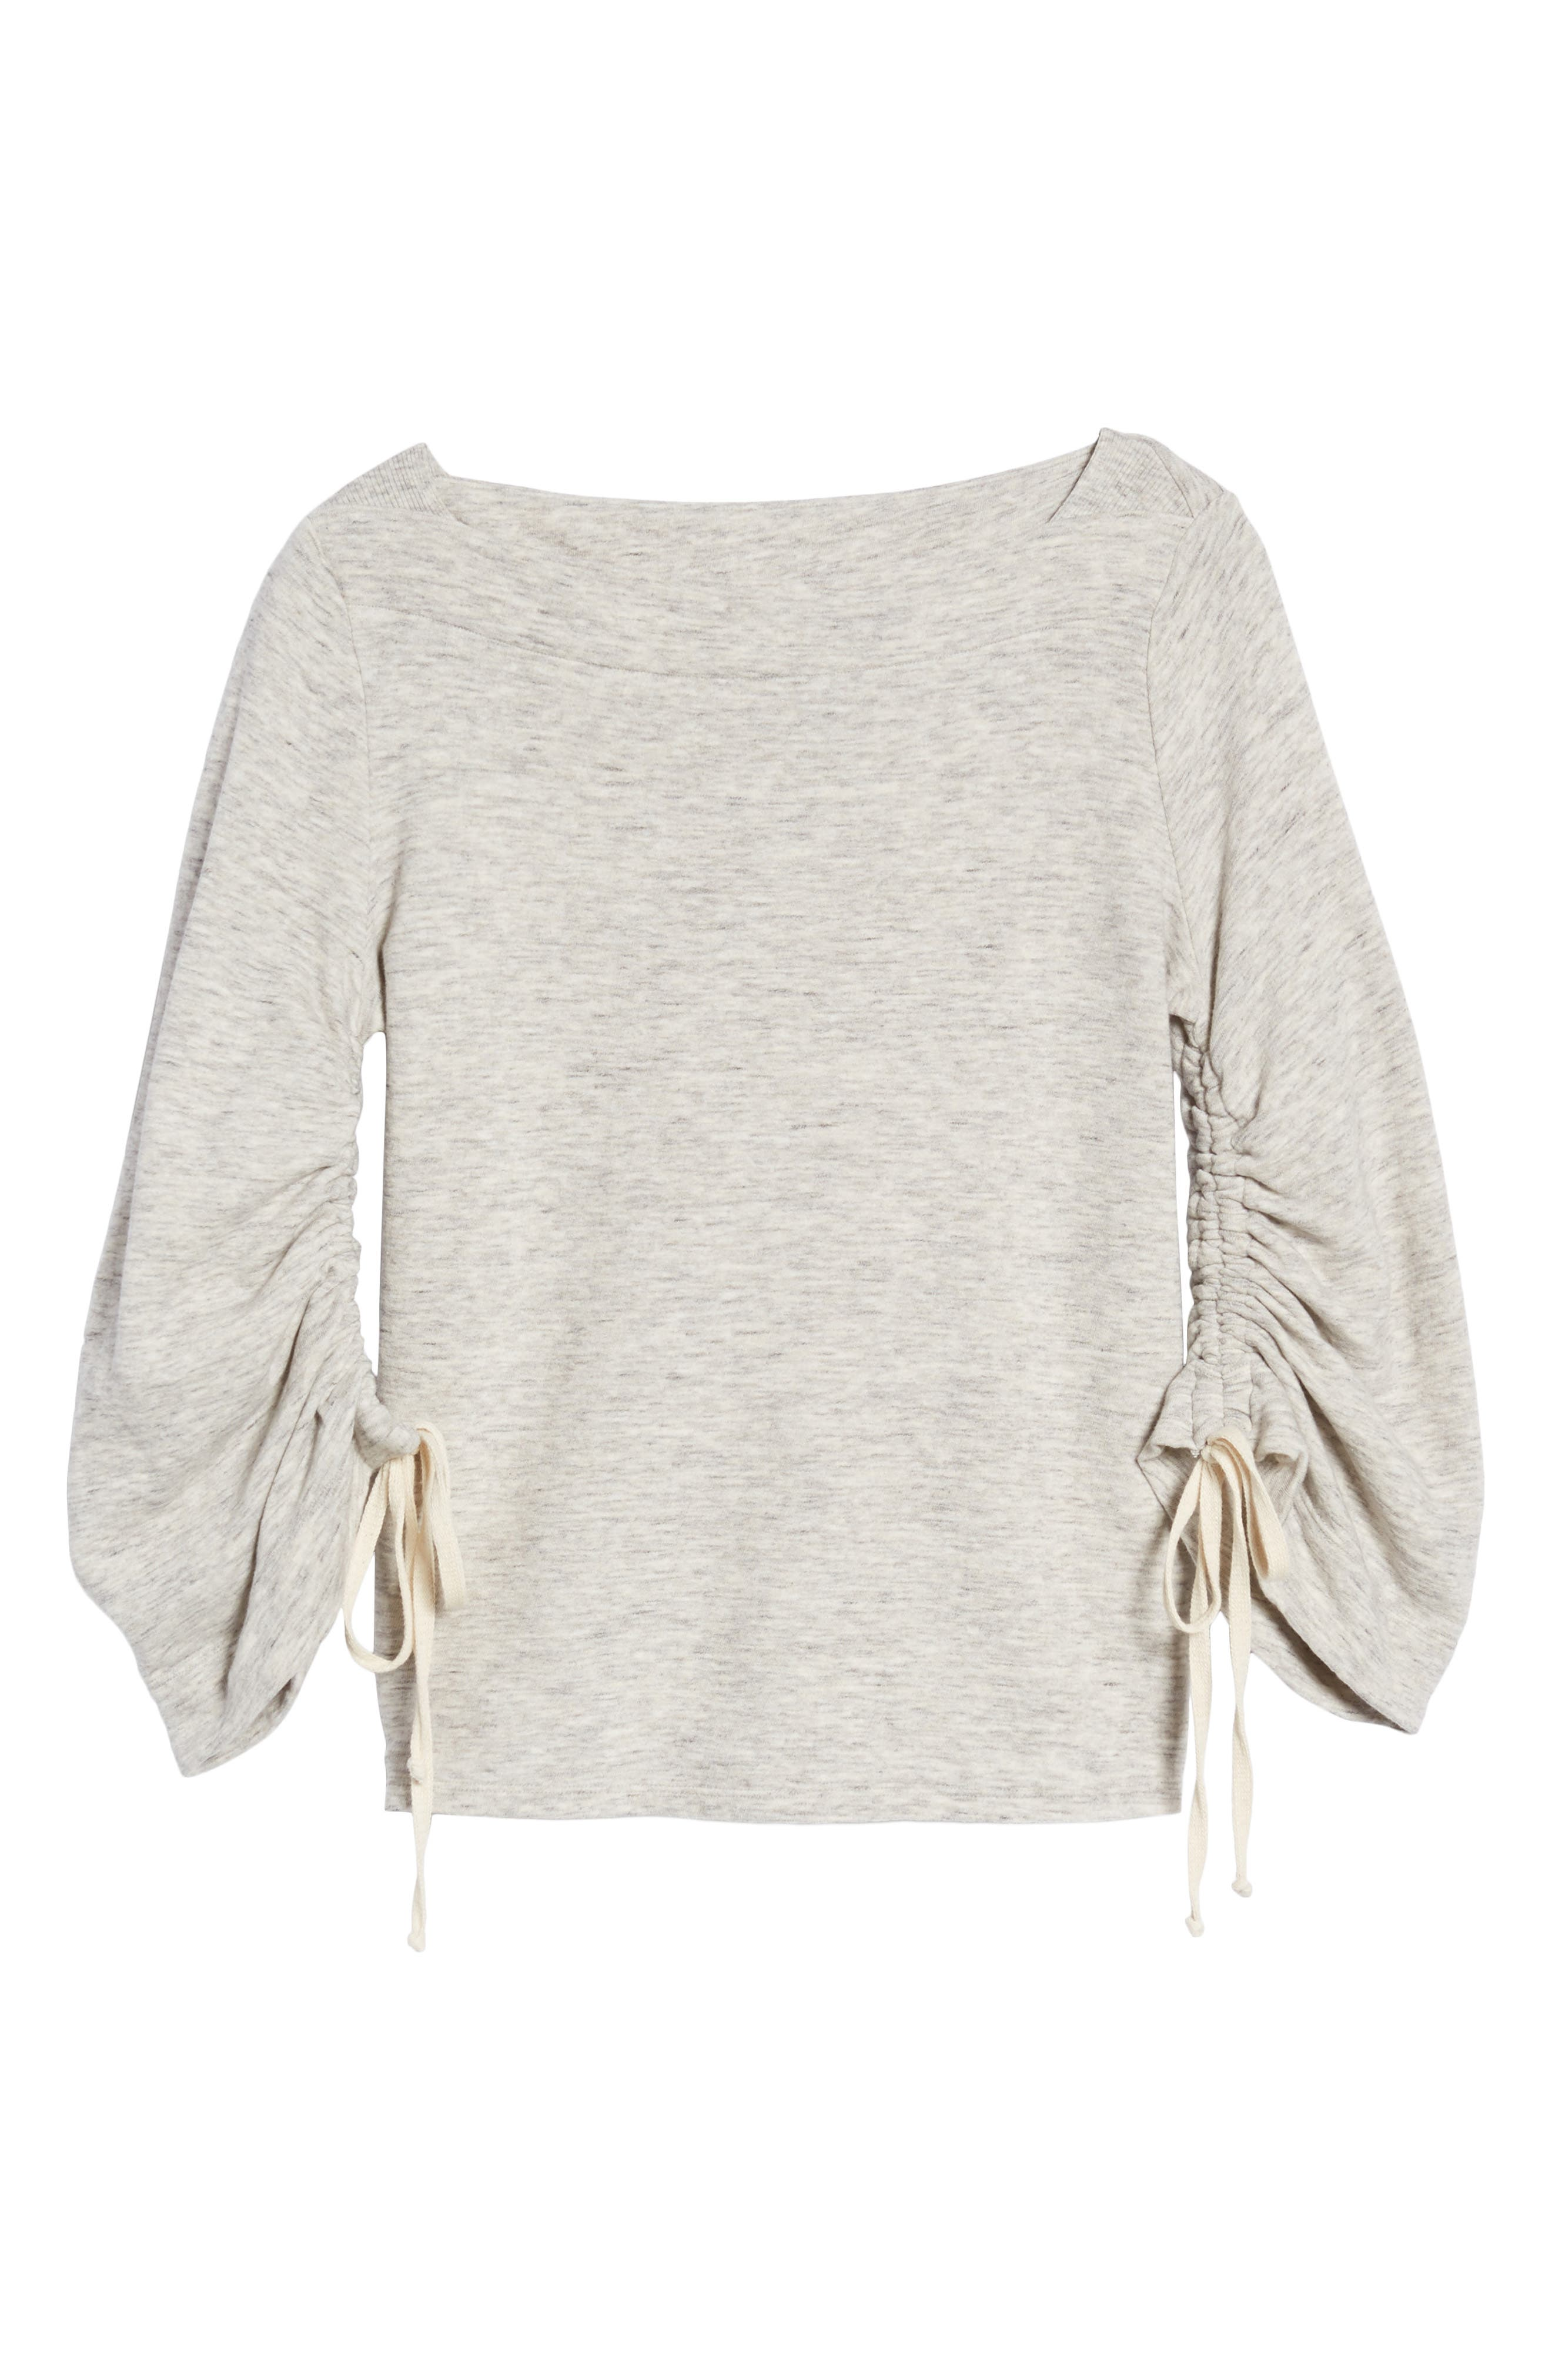 Ruched Sleeve Sweatshirt,                             Alternate thumbnail 6, color,                             Heather Grey